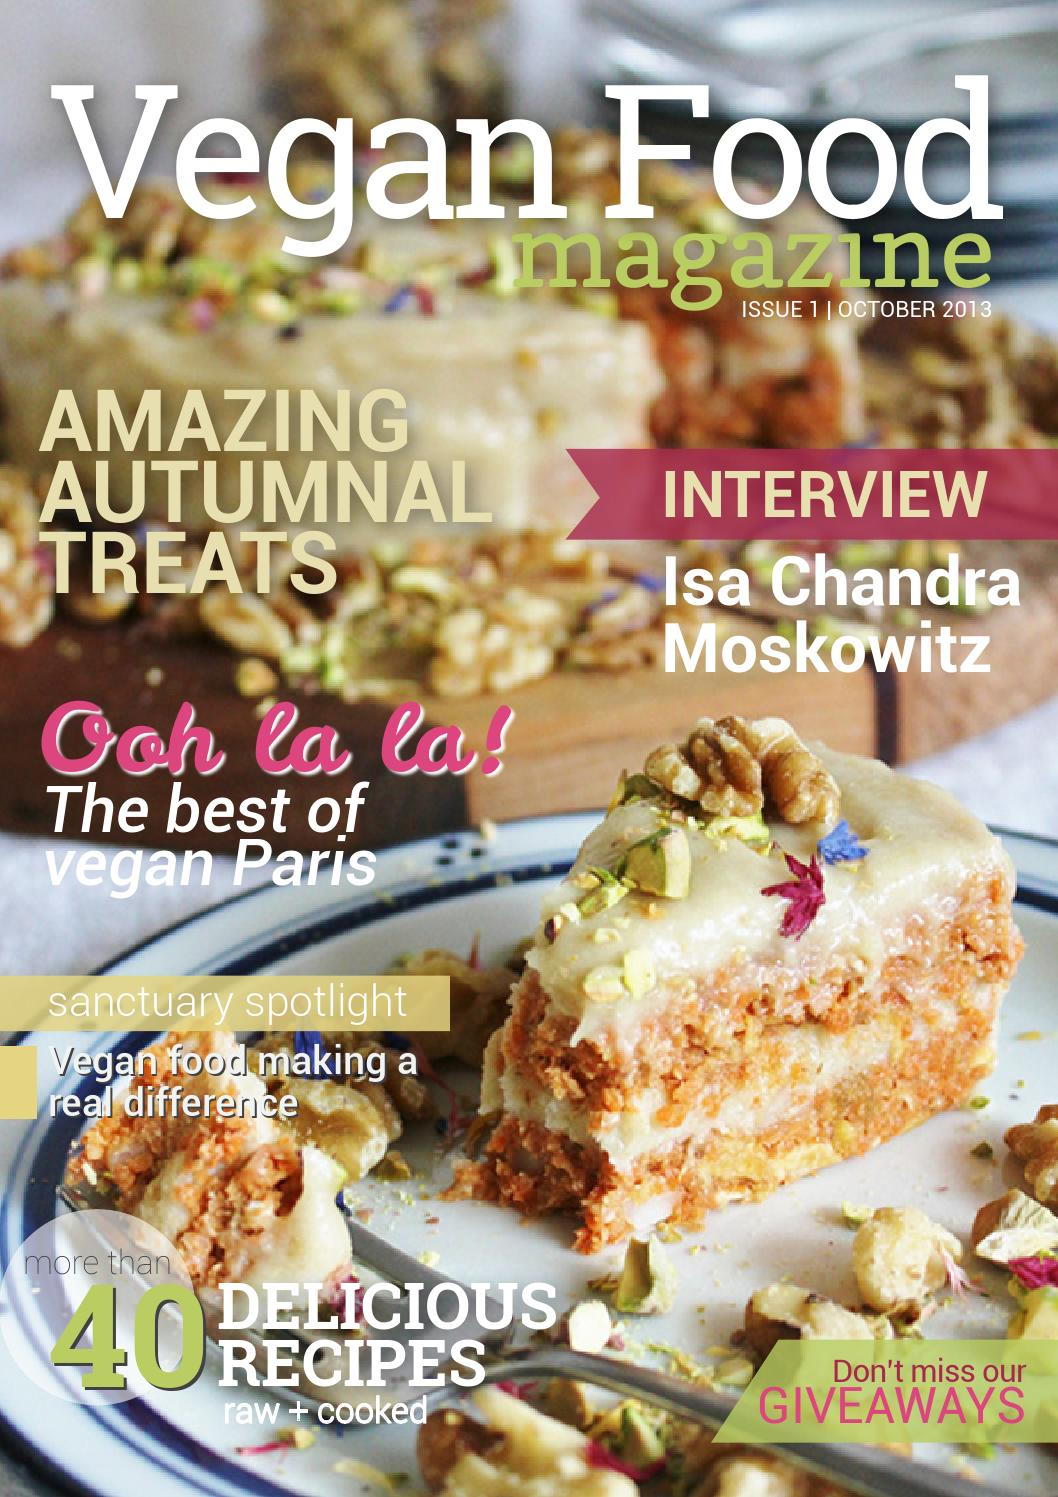 Vegan food magazine issue 1 october 2013 by vegan food magazine vegan food magazine issue 1 october 2013 by vegan food magazine issuu forumfinder Gallery